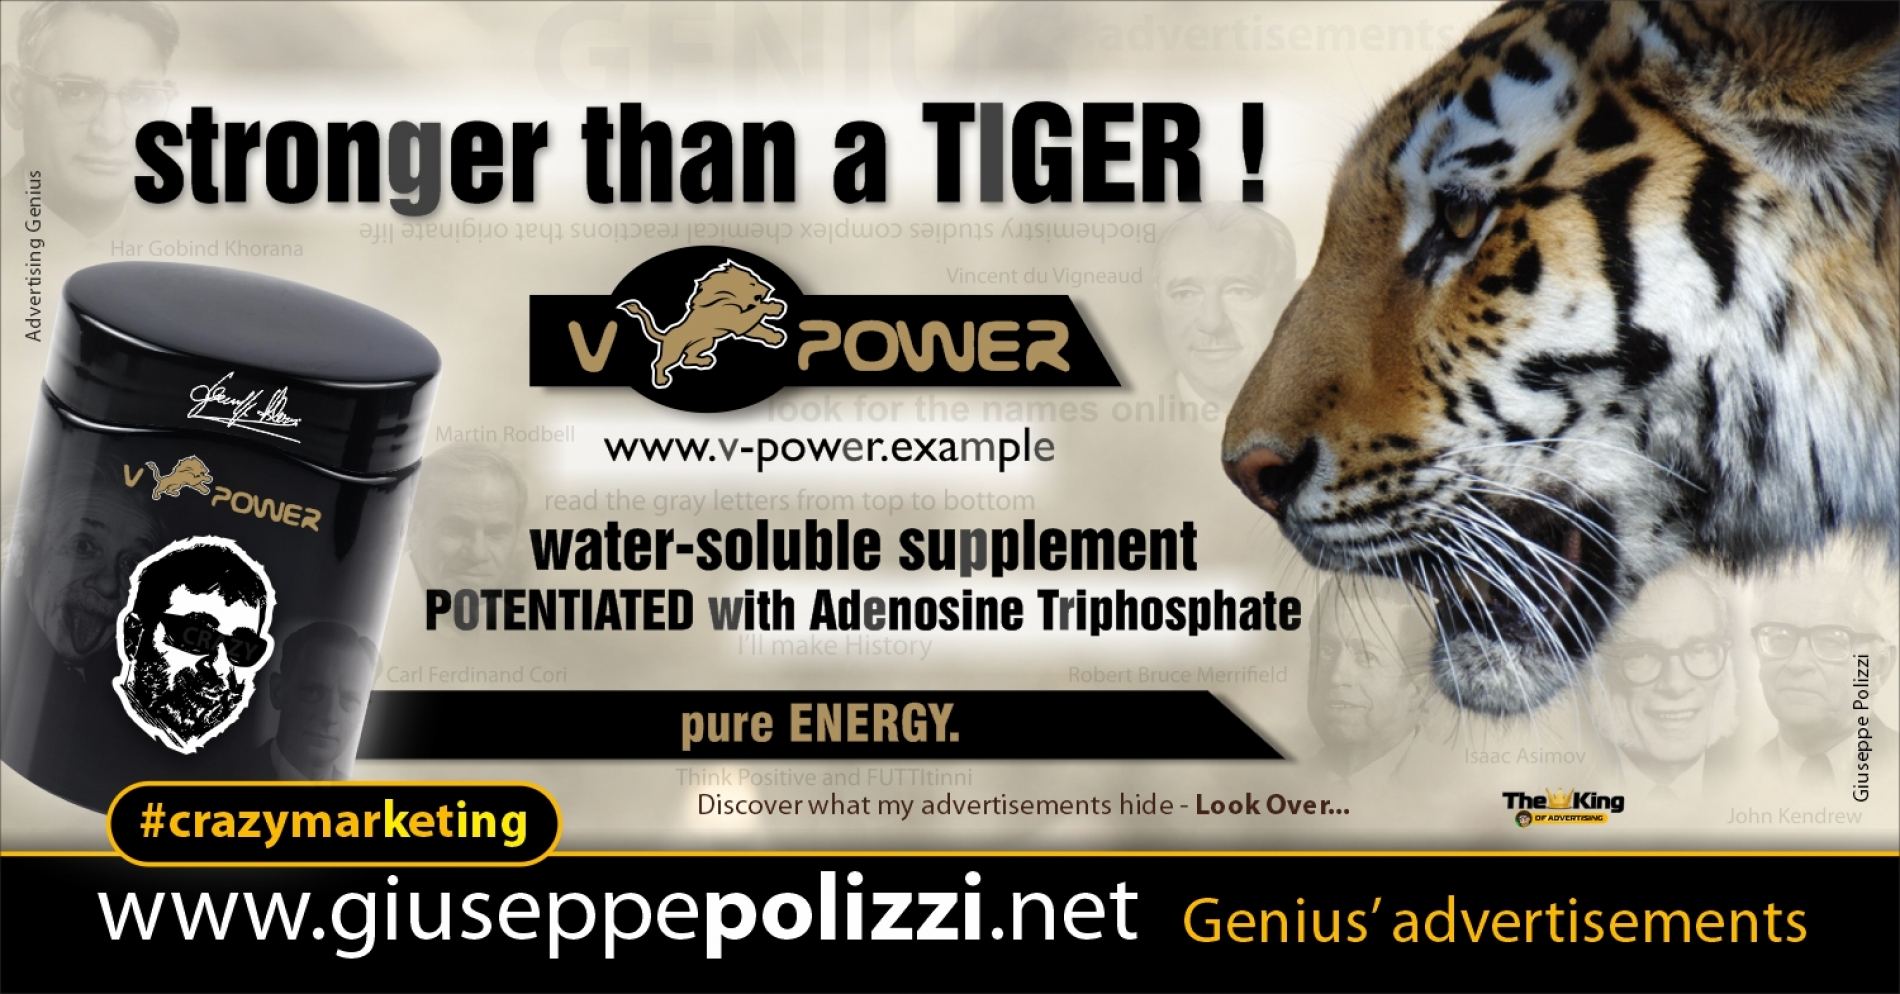 Giuseppe Polizzi Crazymarketing stronger than a tiger advertisements